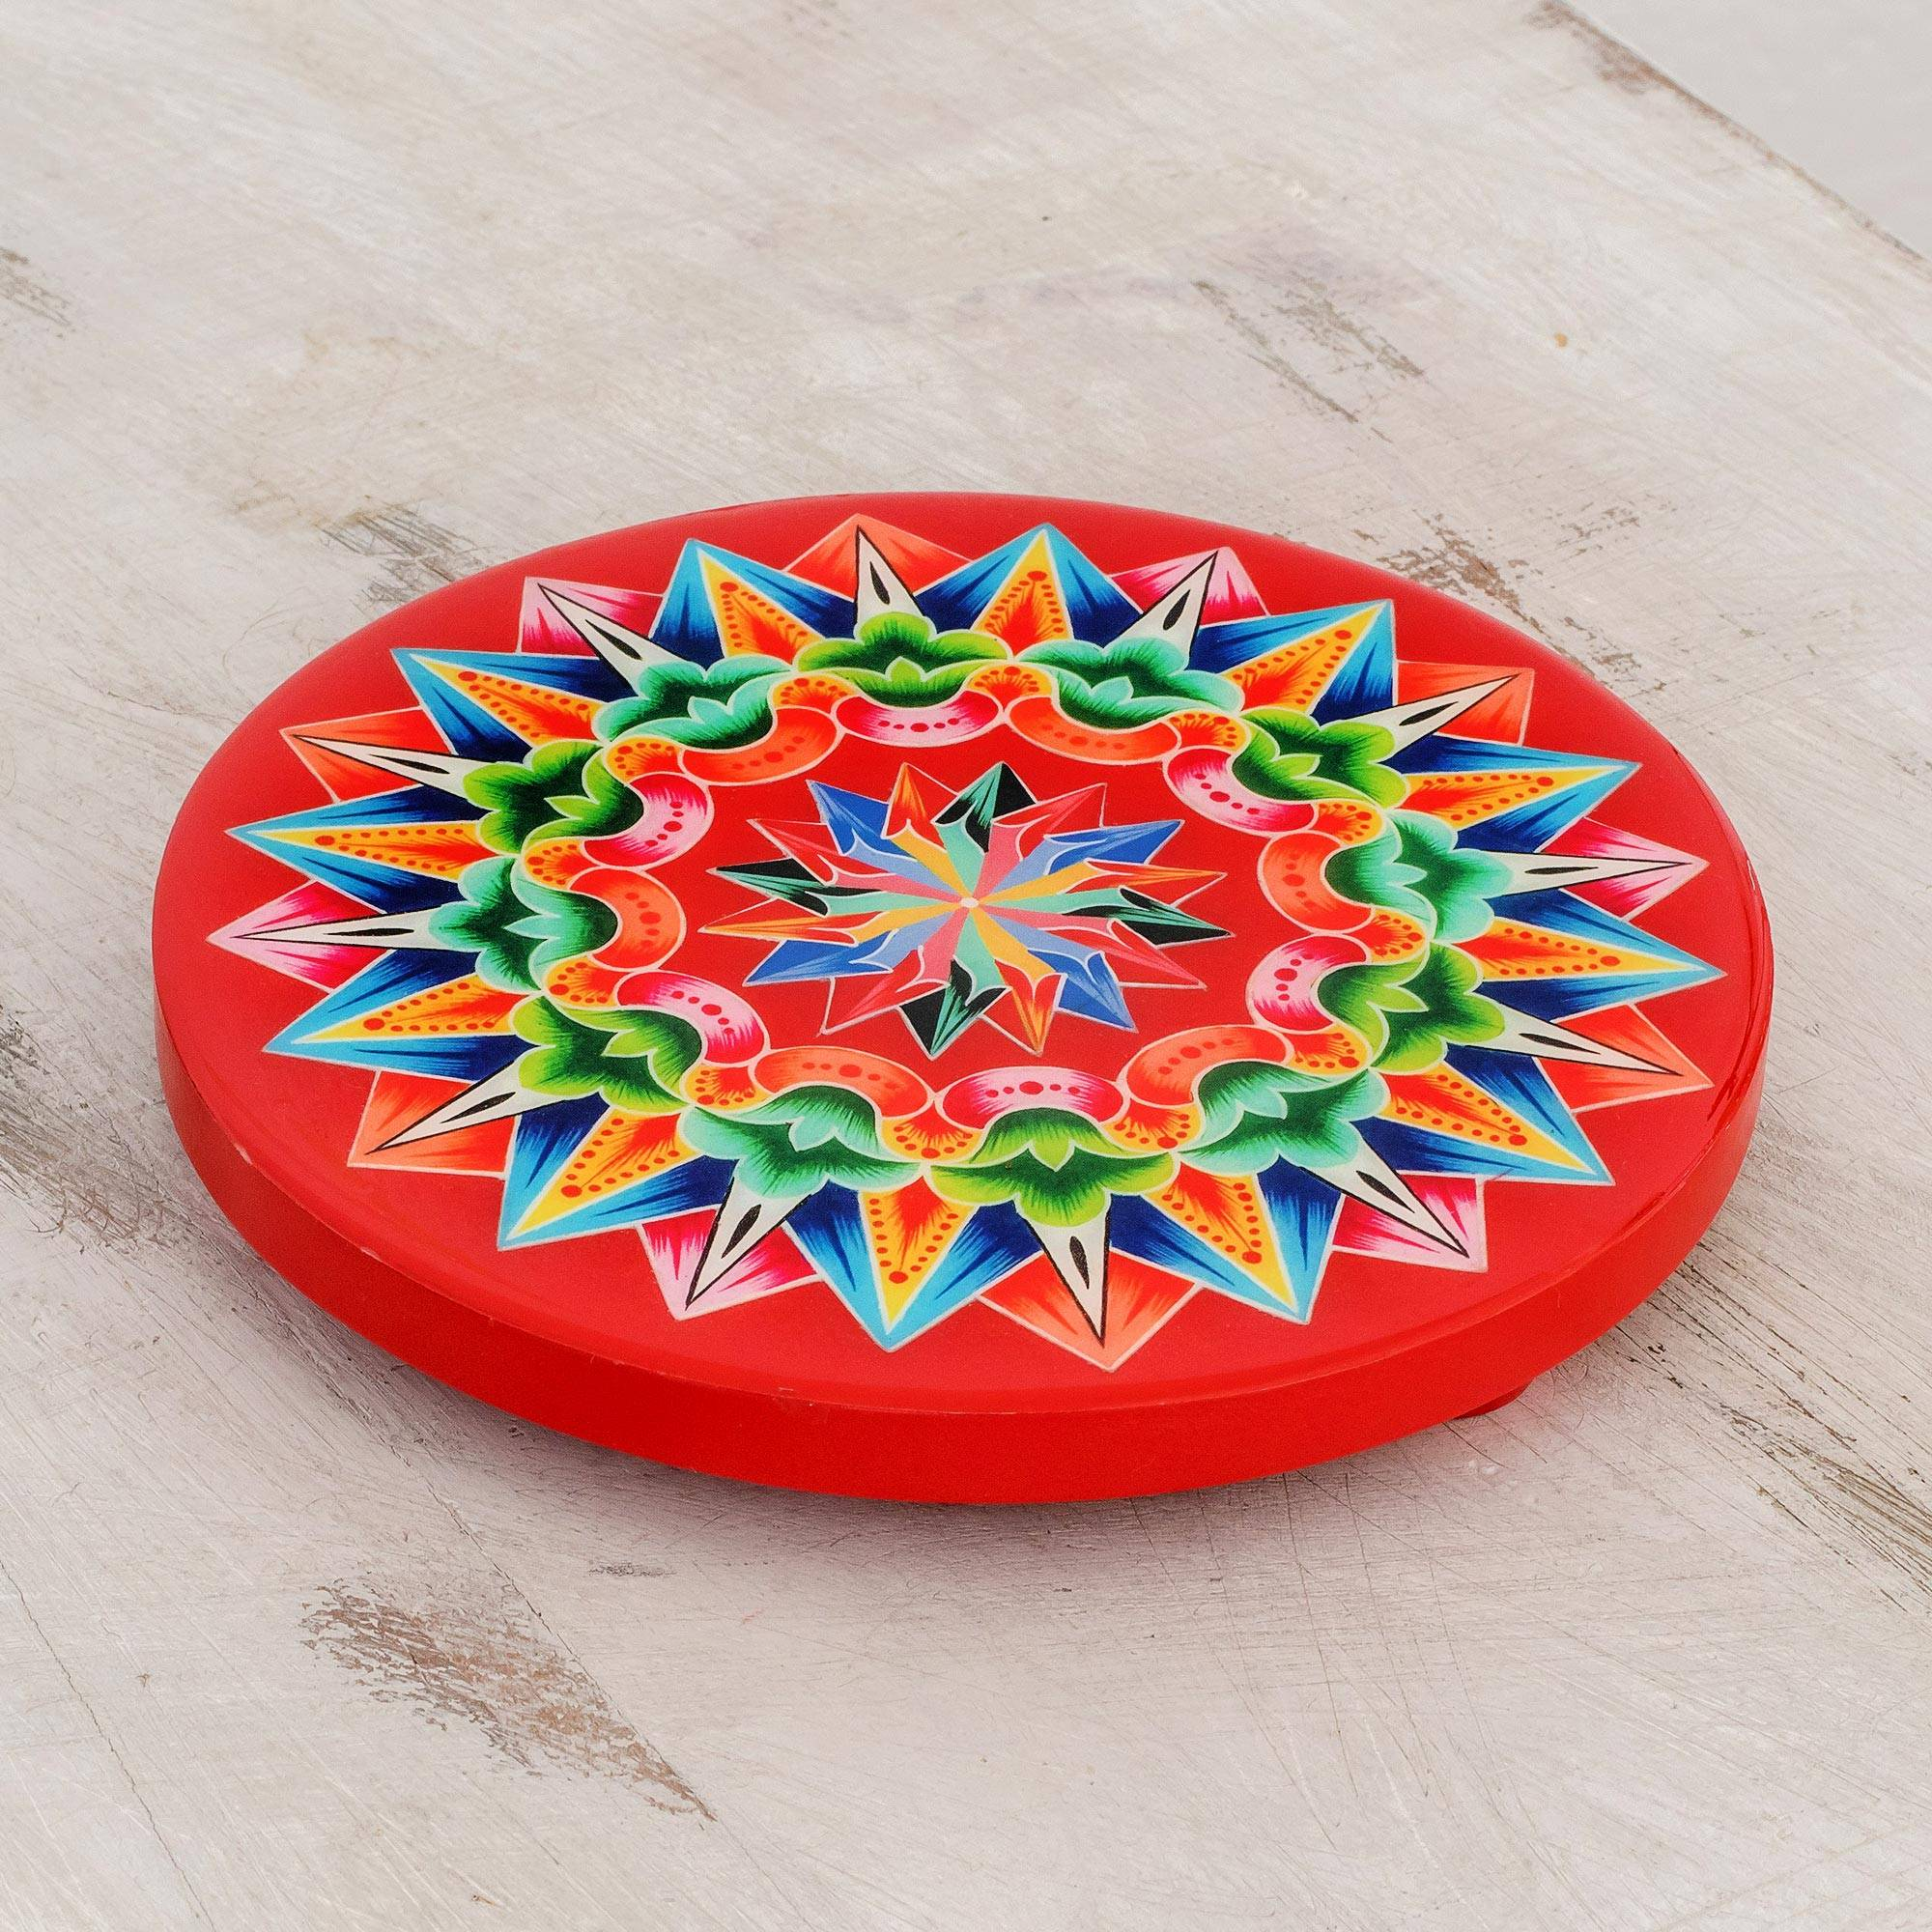 Decoupage Wood Trivet In Red From Costa Rica Traditional Colors In Red Novica